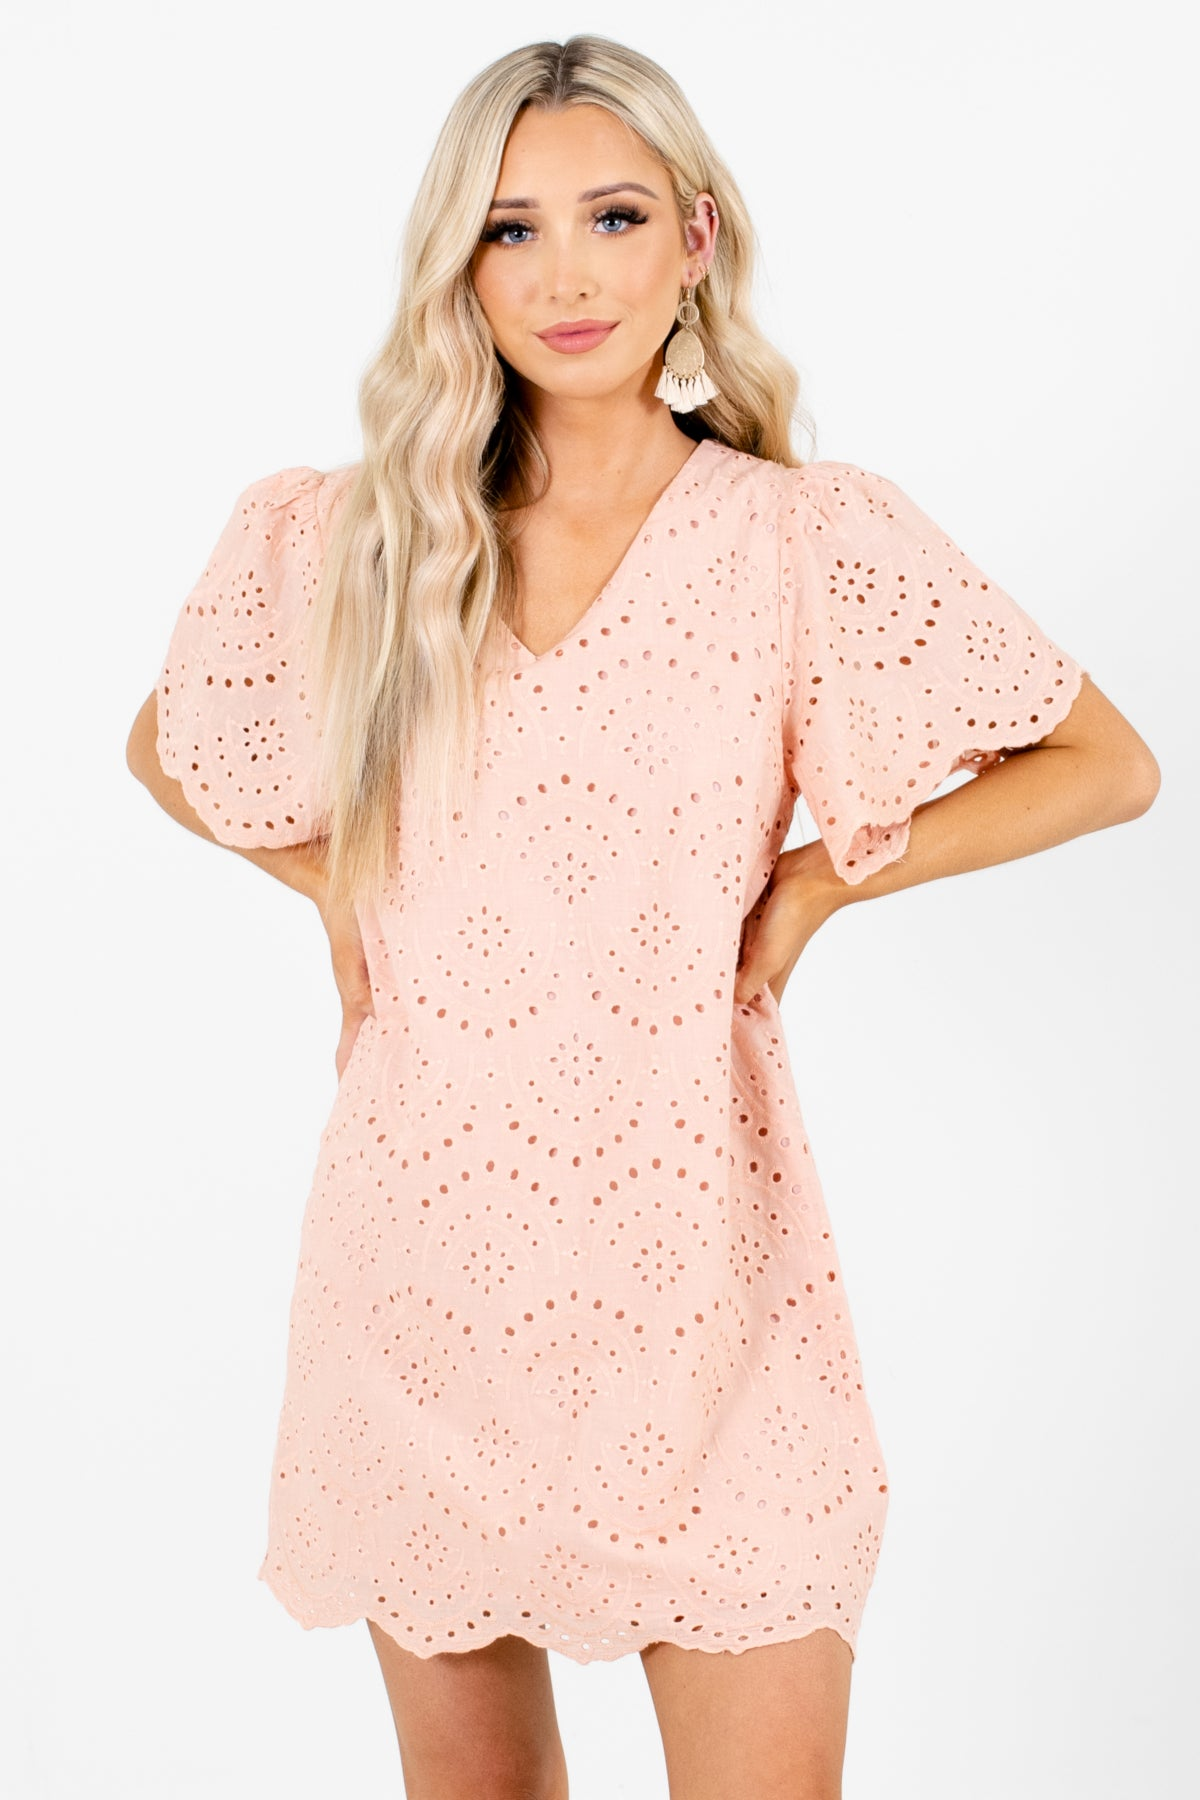 Pink Eyelet Material Boutique Mini Dresses for Women